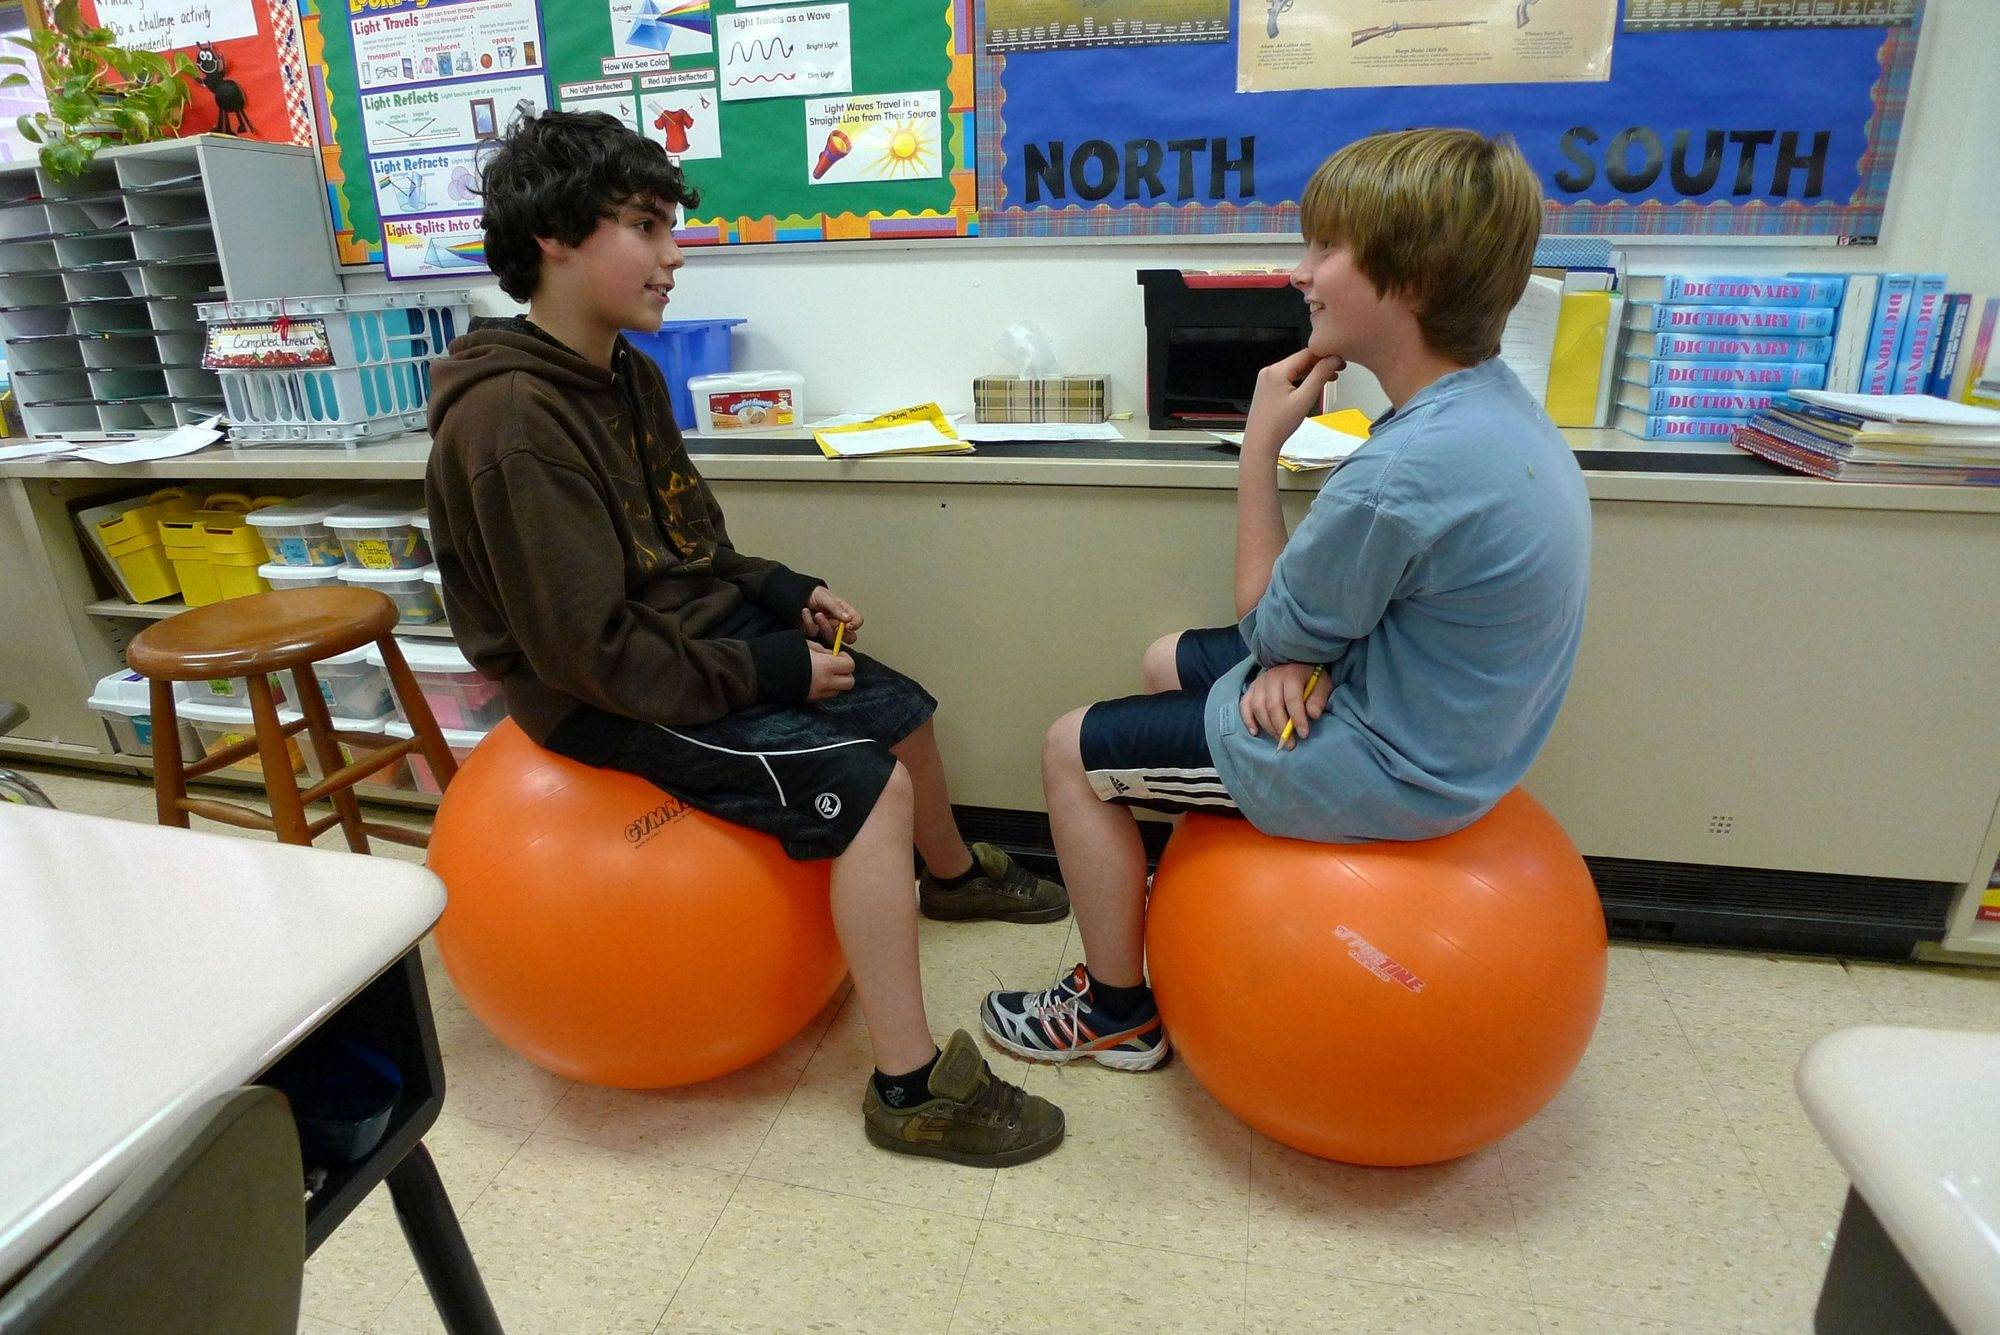 Danny Peters, left, and Max Tuhey, right, chat about a writing project they're working on. Fifth graders at Park View School in Lombard are experimenting with sitting on stability balls instead of regular chairs.